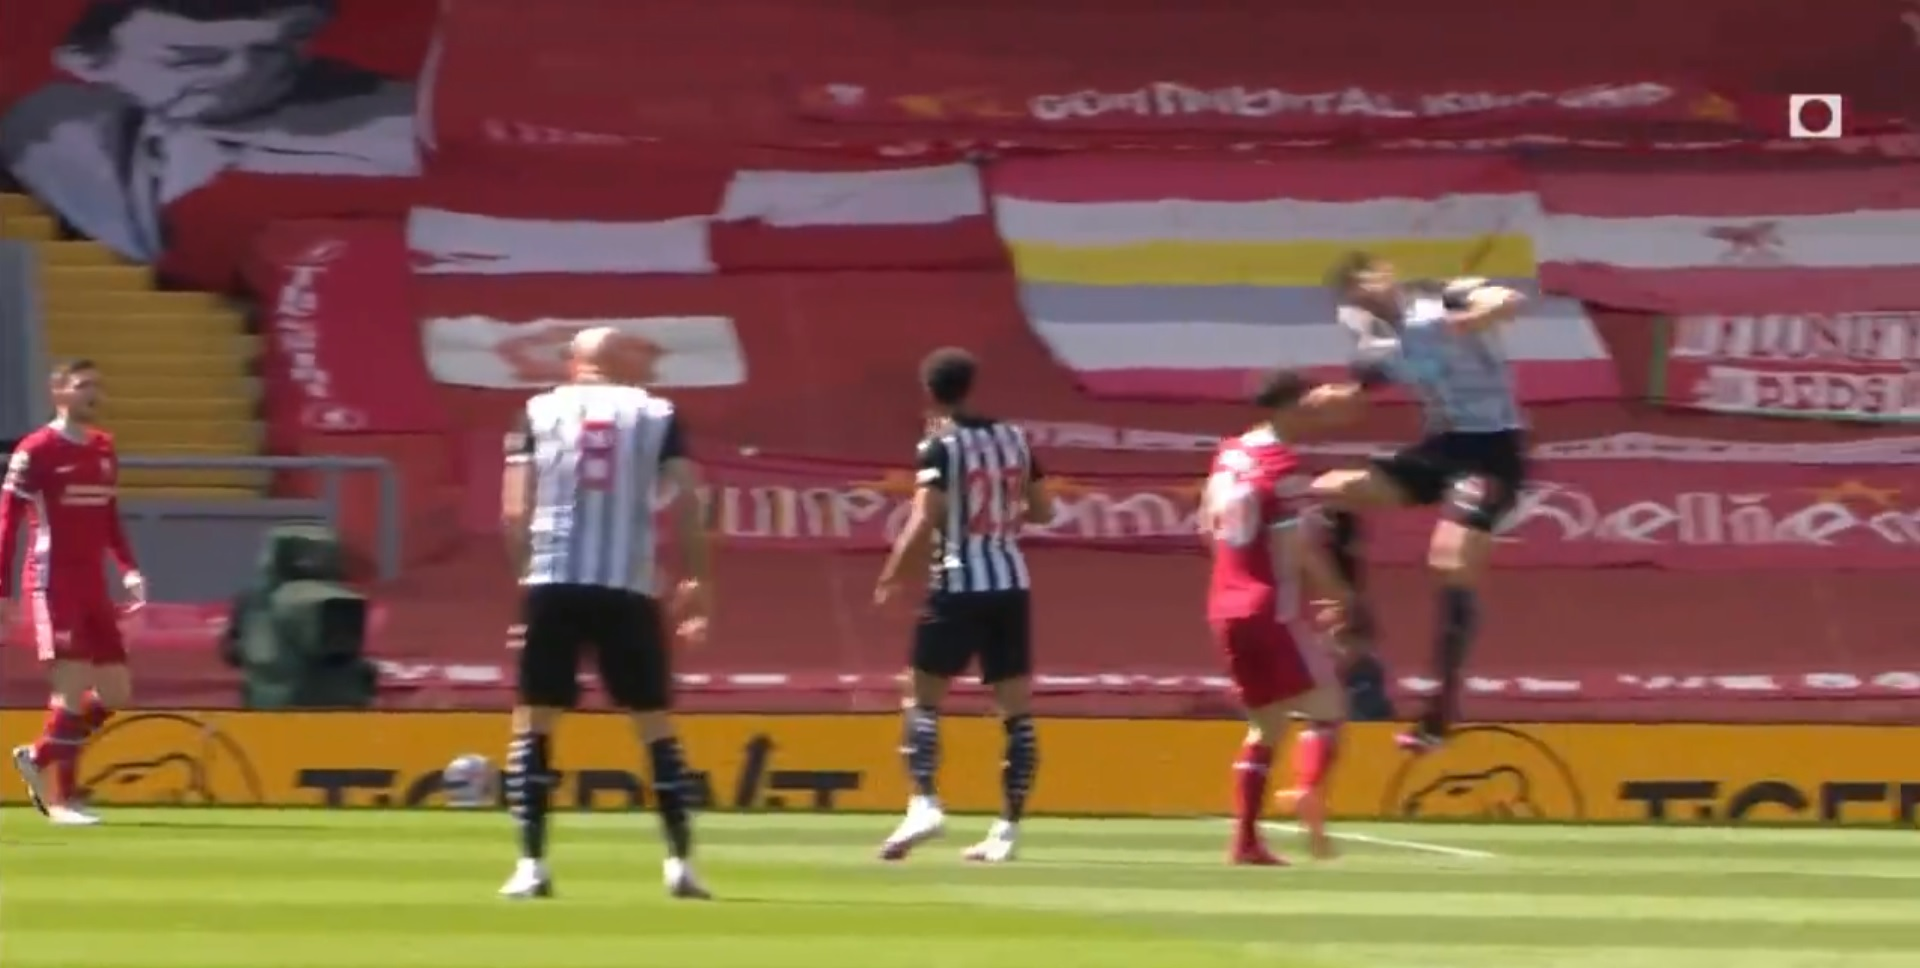 VAR messes up again as Fernandez's elbow on Jota was a blatant red card, says ex-ref